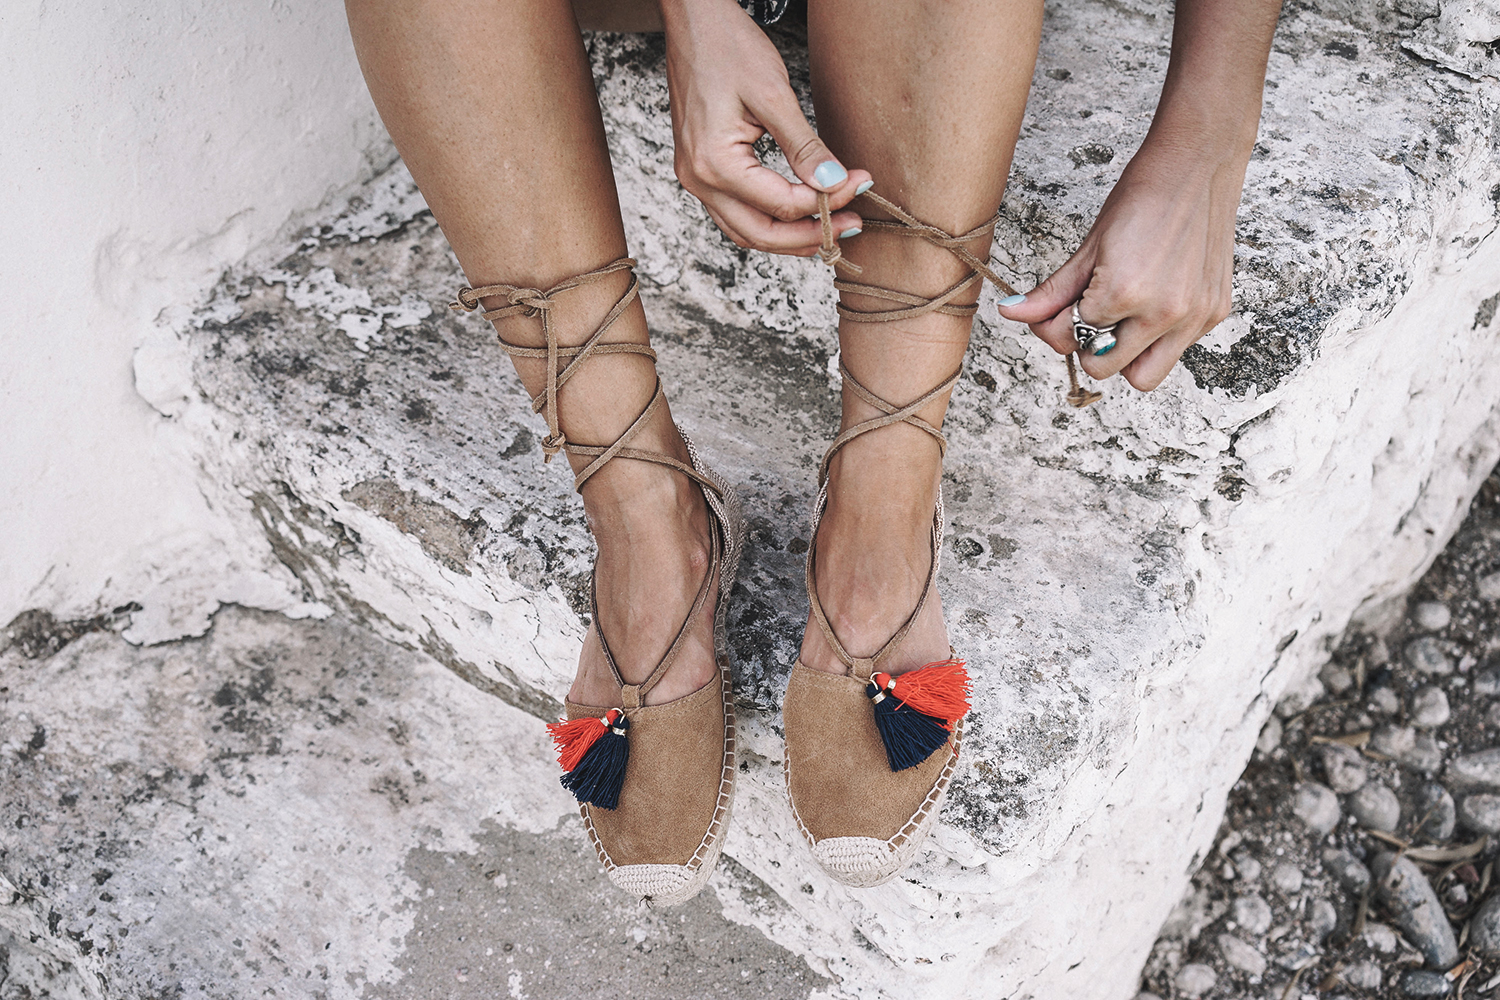 Lace_up_Blouse-Ralph_Lauren-Soludos_Espadrilles-Soludos_Escapes-Skirt-Straw_Hat-Canotier-Lack_Of_Color-Street_Style-Mykonos-Greece-Collage_Vintage-134